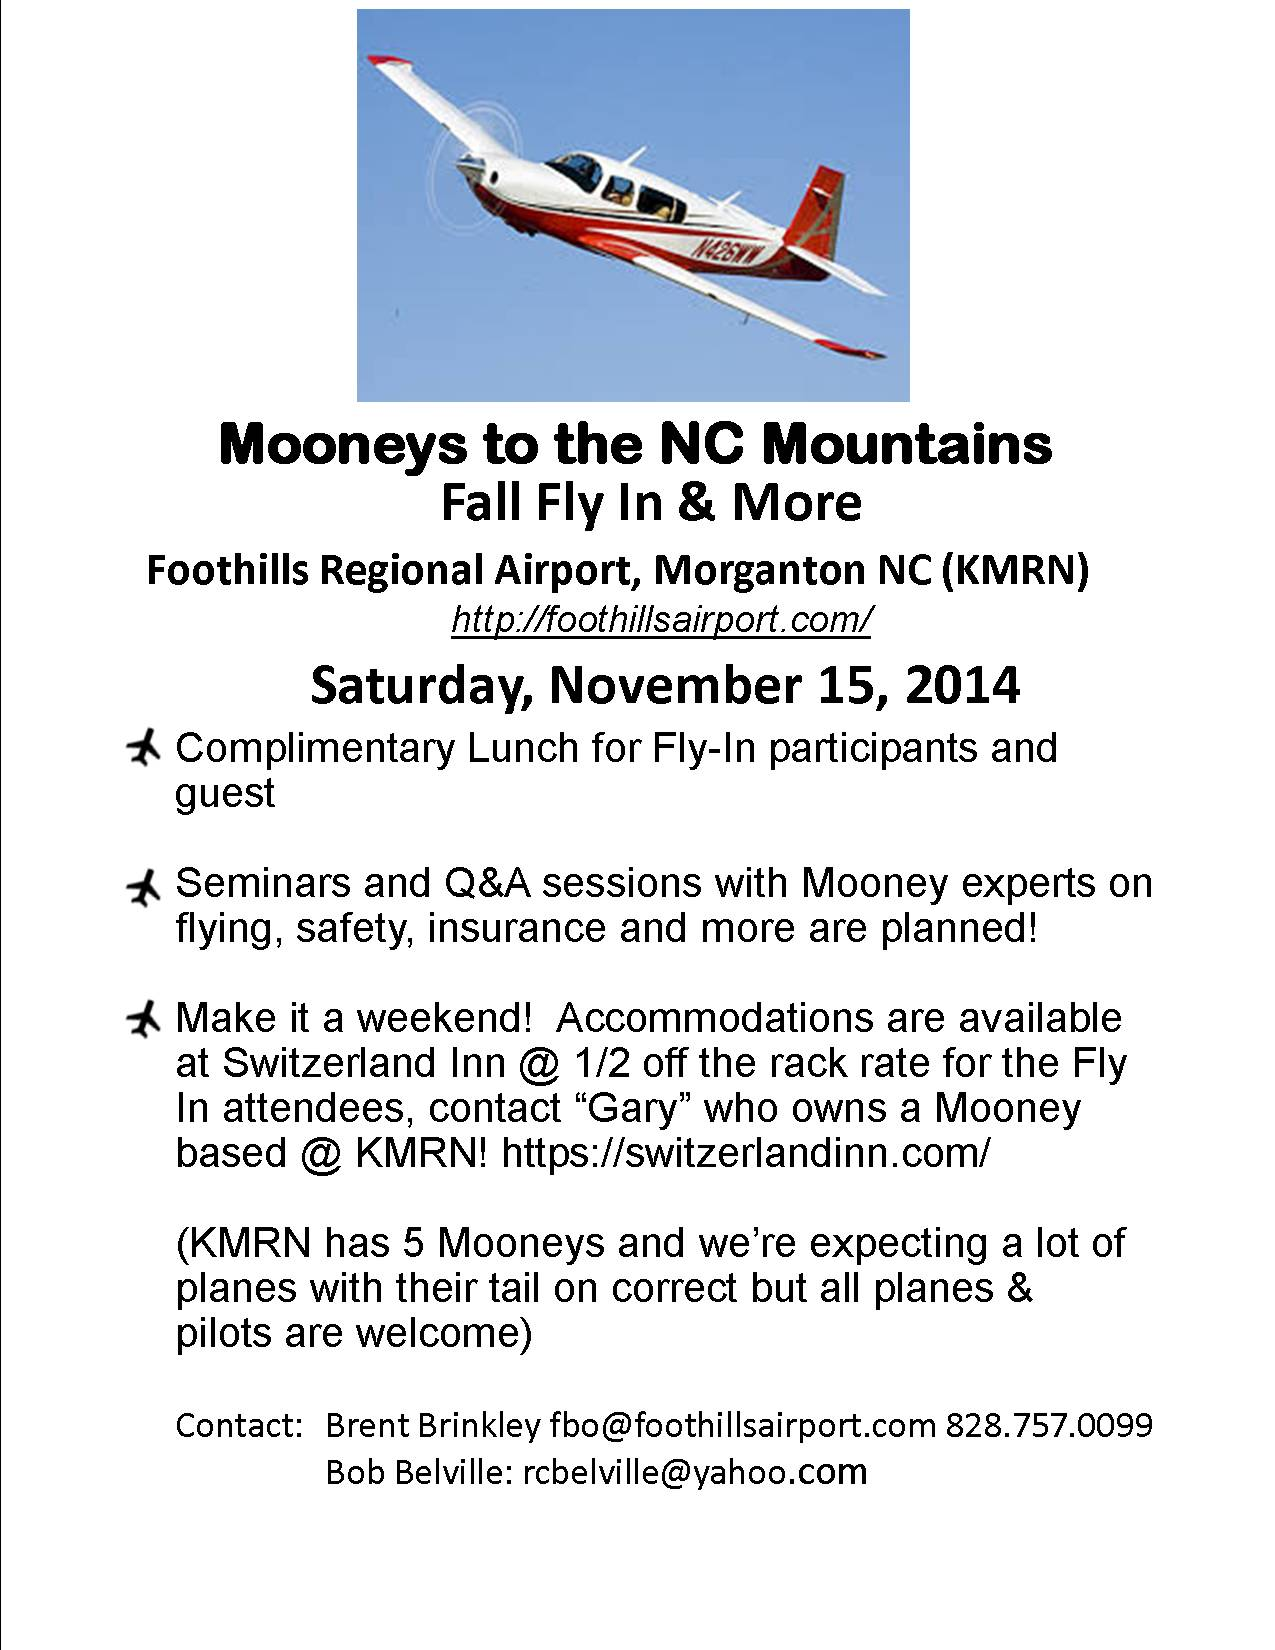 Mooney Fly In